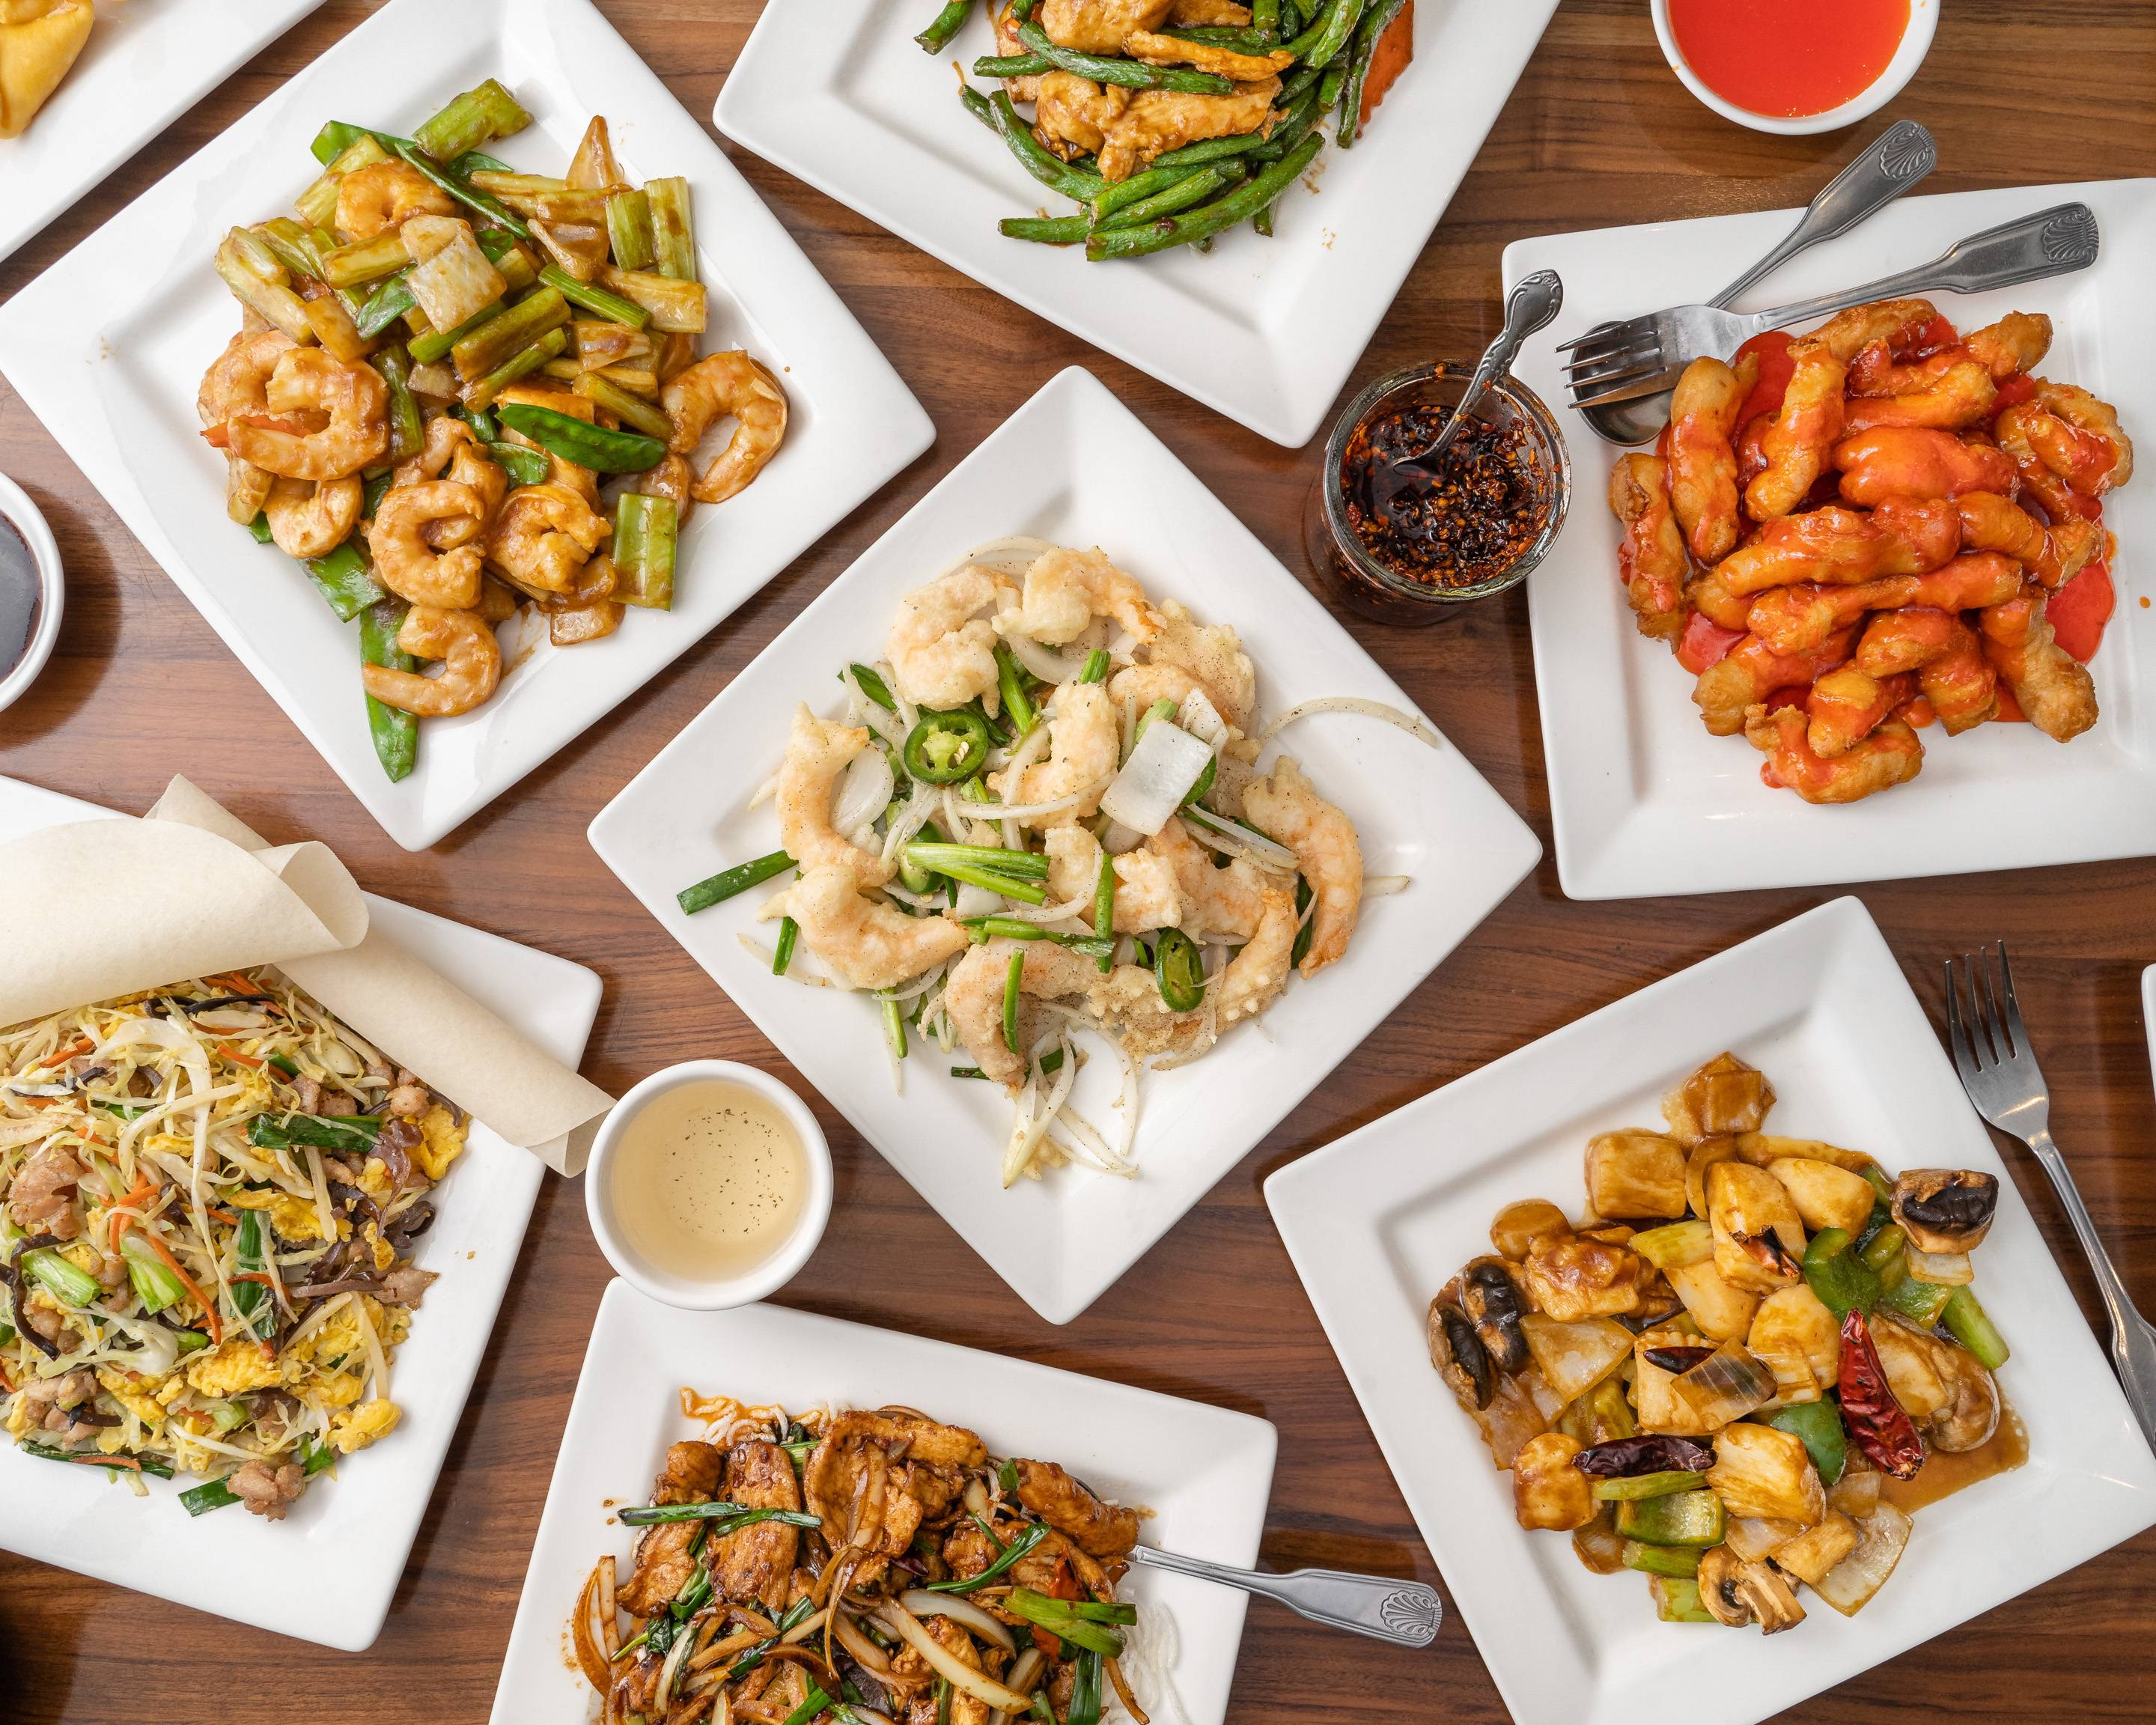 order mr chen's chinese kitchen delivery online